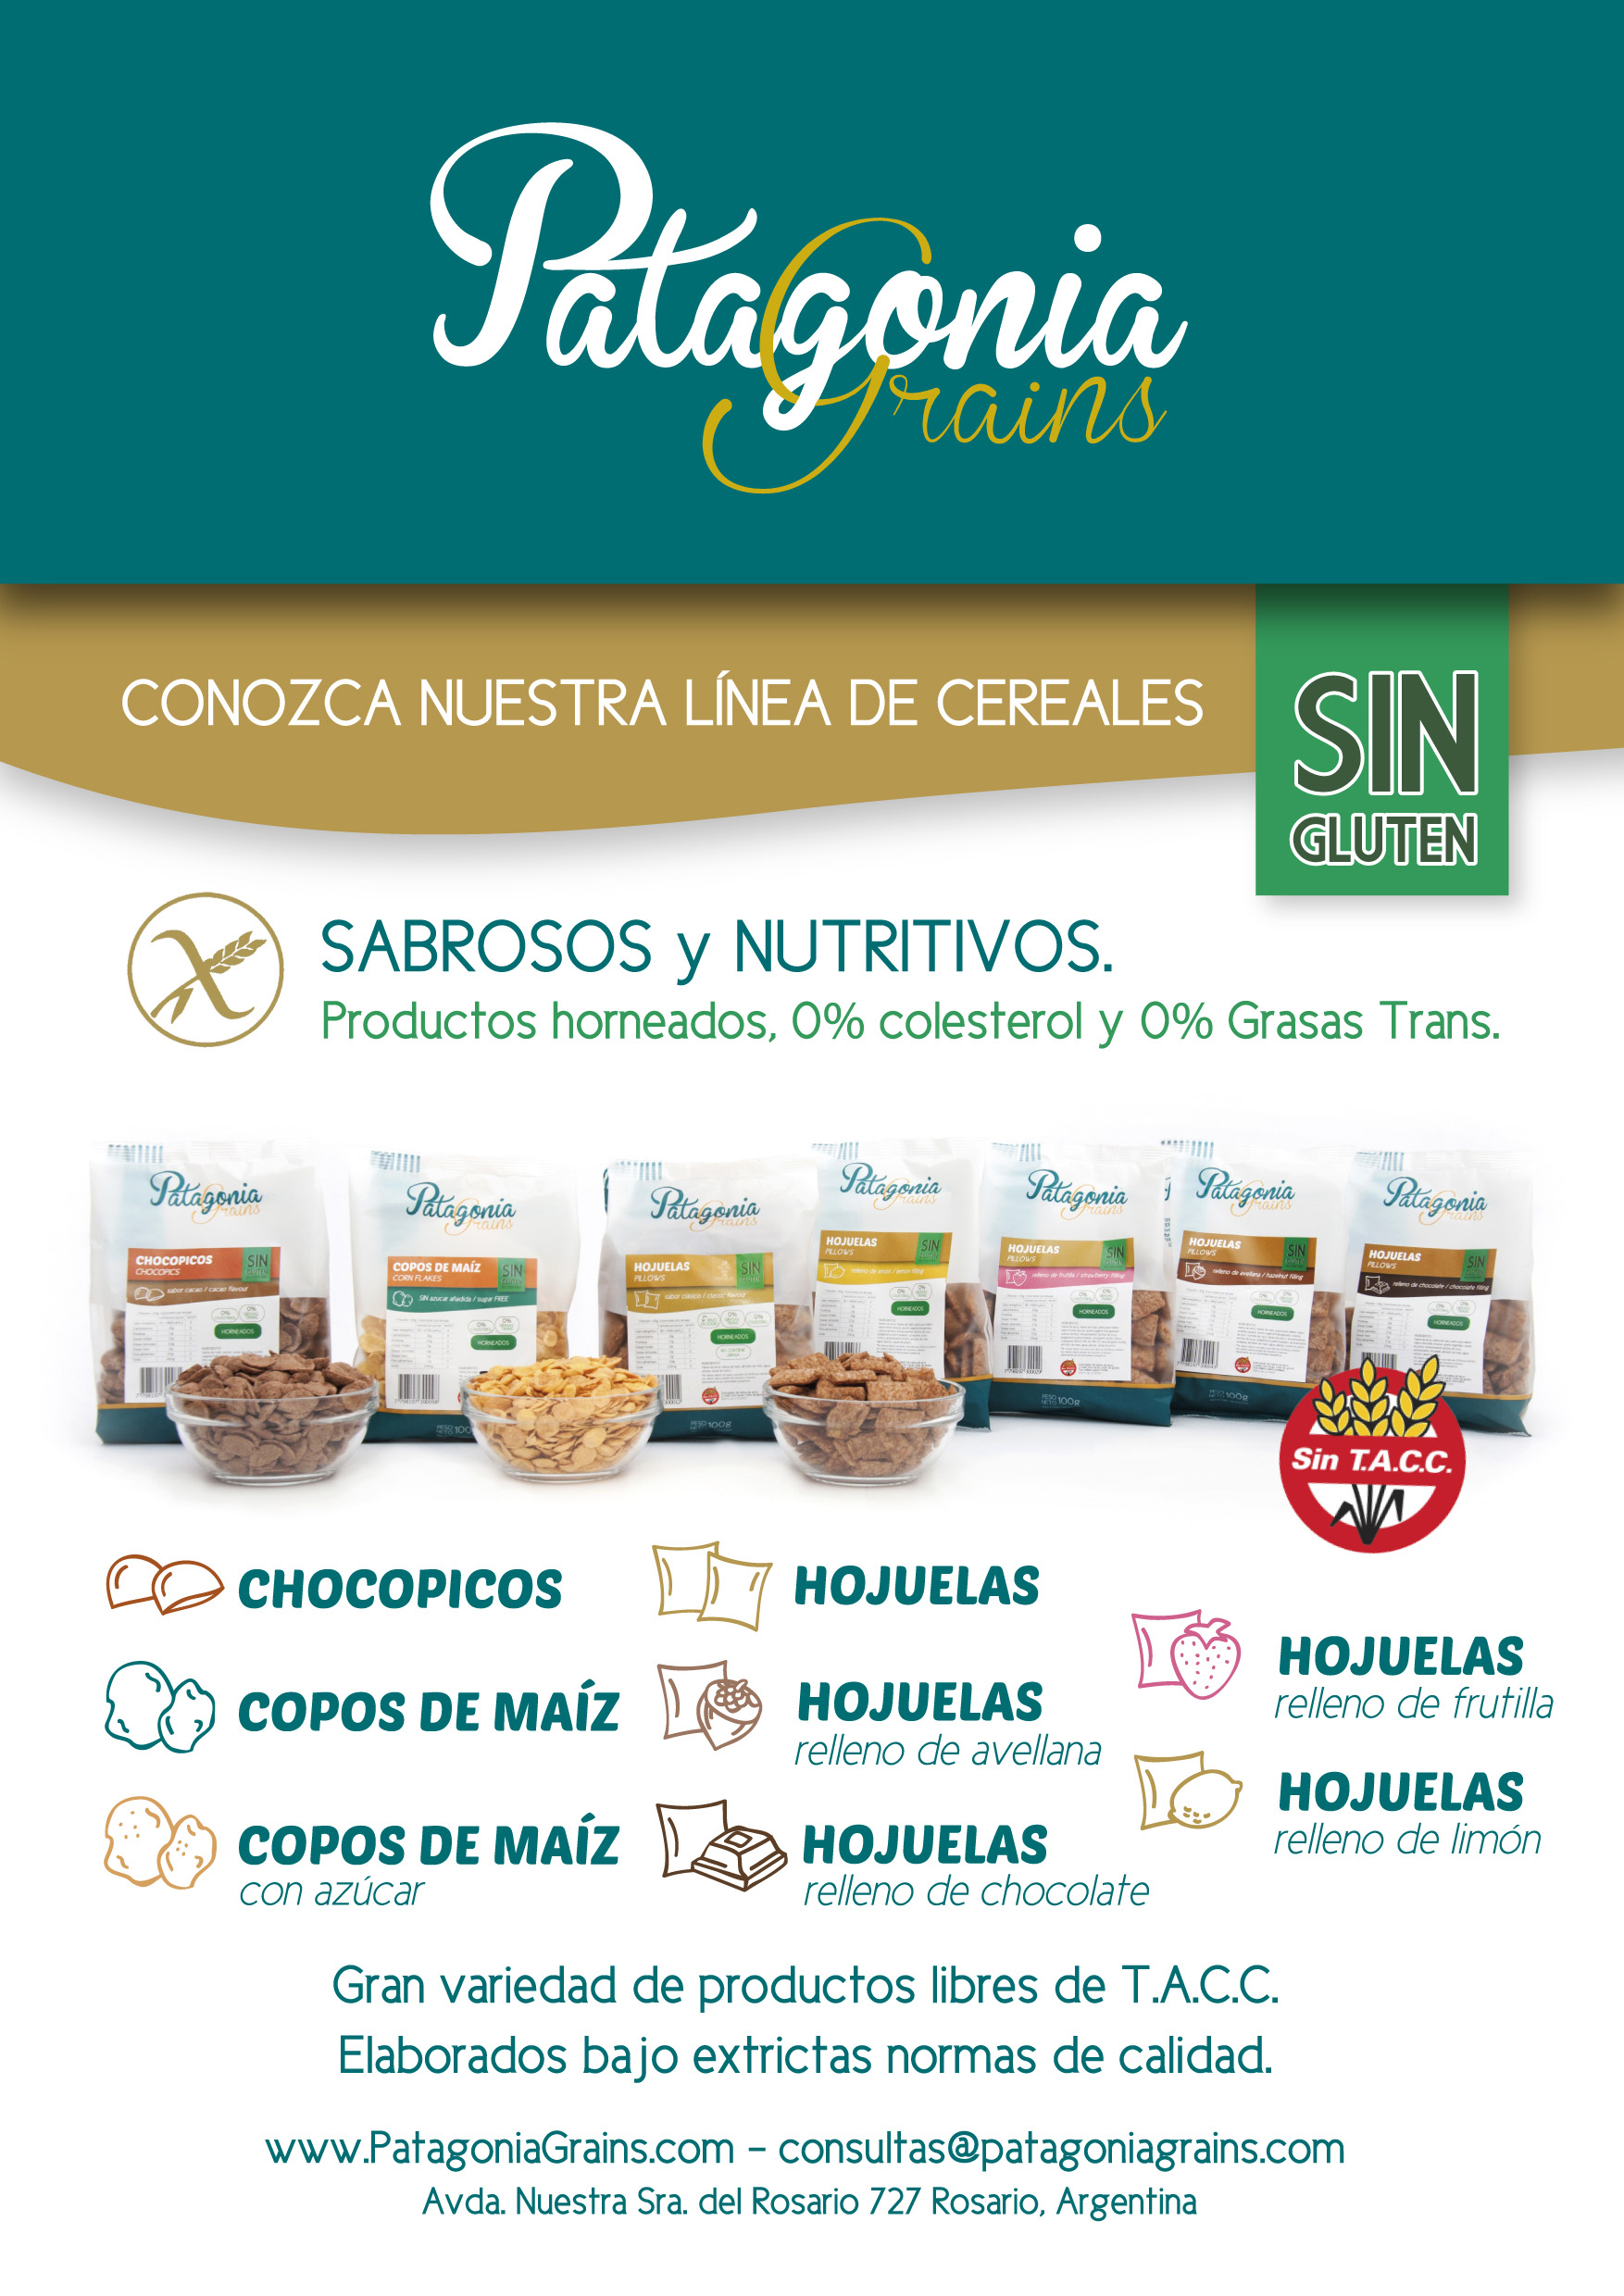 Patagonia Grains Cereales